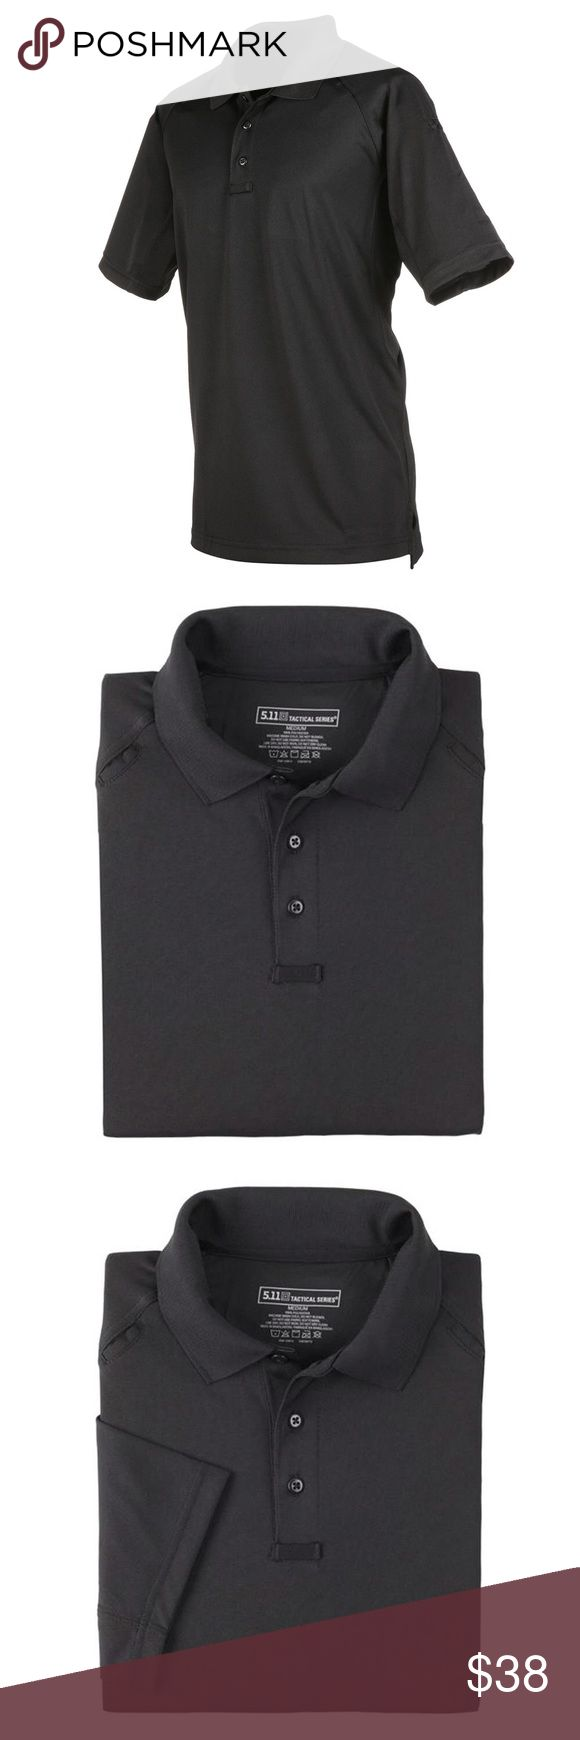 5.11 TACTICAL PERFORMANCE BLACK POLO SHIRT SZ L *PLEASE READ ENTIRE DESCRIPTION AND VIEW ALL PICTURES BEFORE PLACING YOUR BID. THANK YOU.   *100% AUTHENTIC AND SATISFACTION GUARANTEED! NO FAKES! NO VARIANTS! PLEASE CHECK MY EXCELLENT FEEDBACK!   *SERIOUS BUYERS ONLY PLEASE!   *I ALSO ASK BEFORE YOU LEAVE NEGATIVE FEEDBACK PLEASE CONTACT ME FIRST TO SEE IF WE CAN WORK SOMETHING OUT.   *MESSAGE ME ANY QUESTIONS YOU MAY HAVE.   *SAVE ME AS A FAVORITE SELLER!!! CHECK MY OTHER LISTINGS! 5.11…